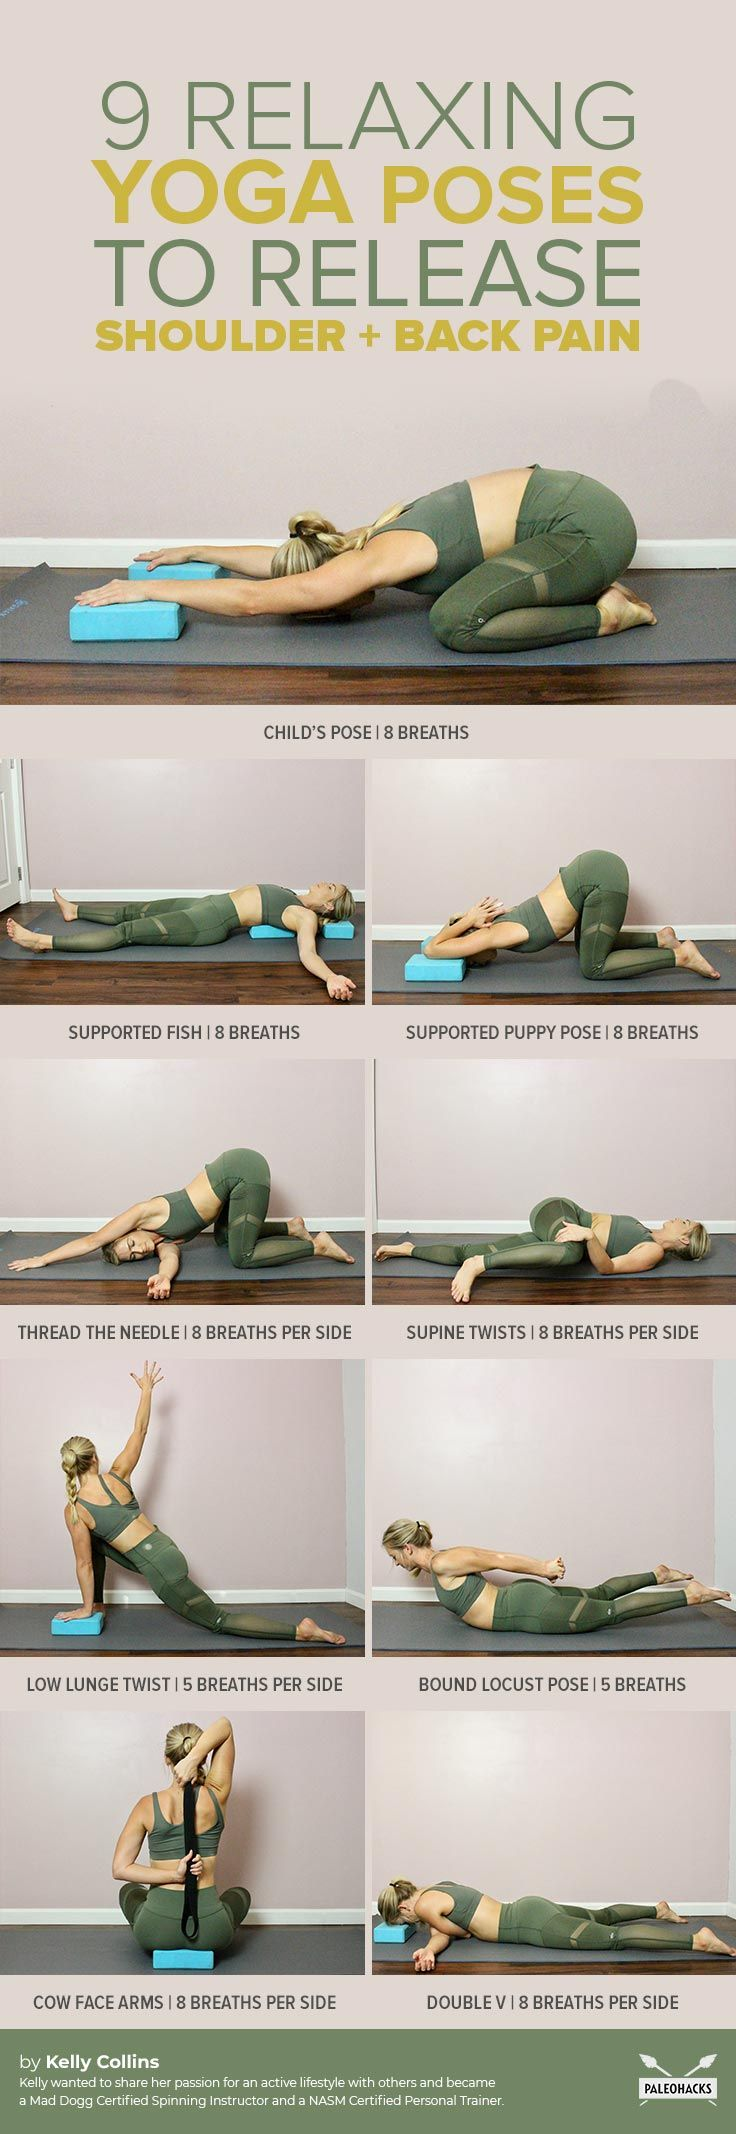 These 9 Relaxing Poses Relieve Pain in Your Back and Shoulders